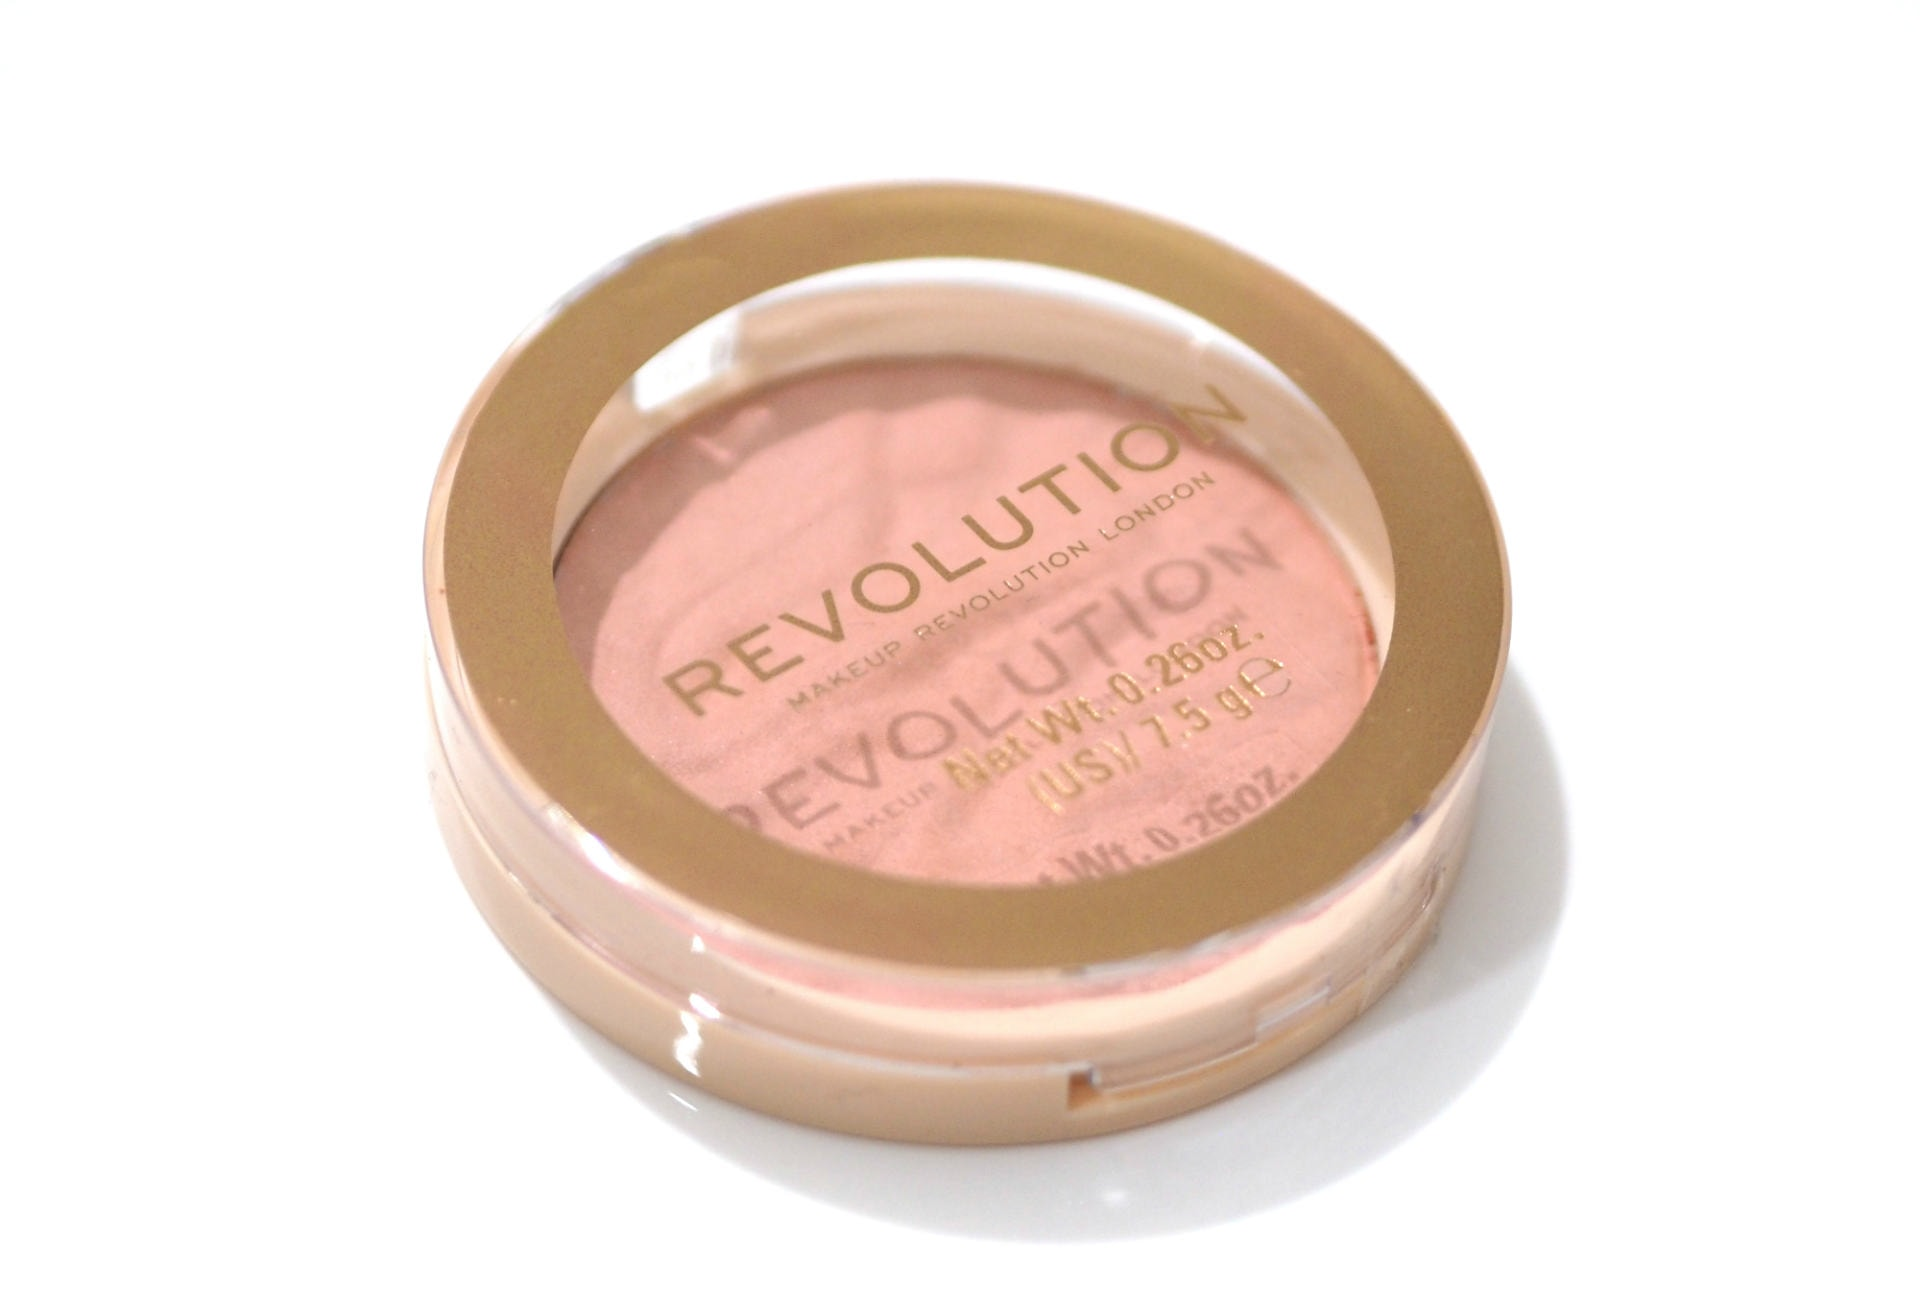 Revolution Blusher Reloaded Review and Swatches in Peaches and Cream